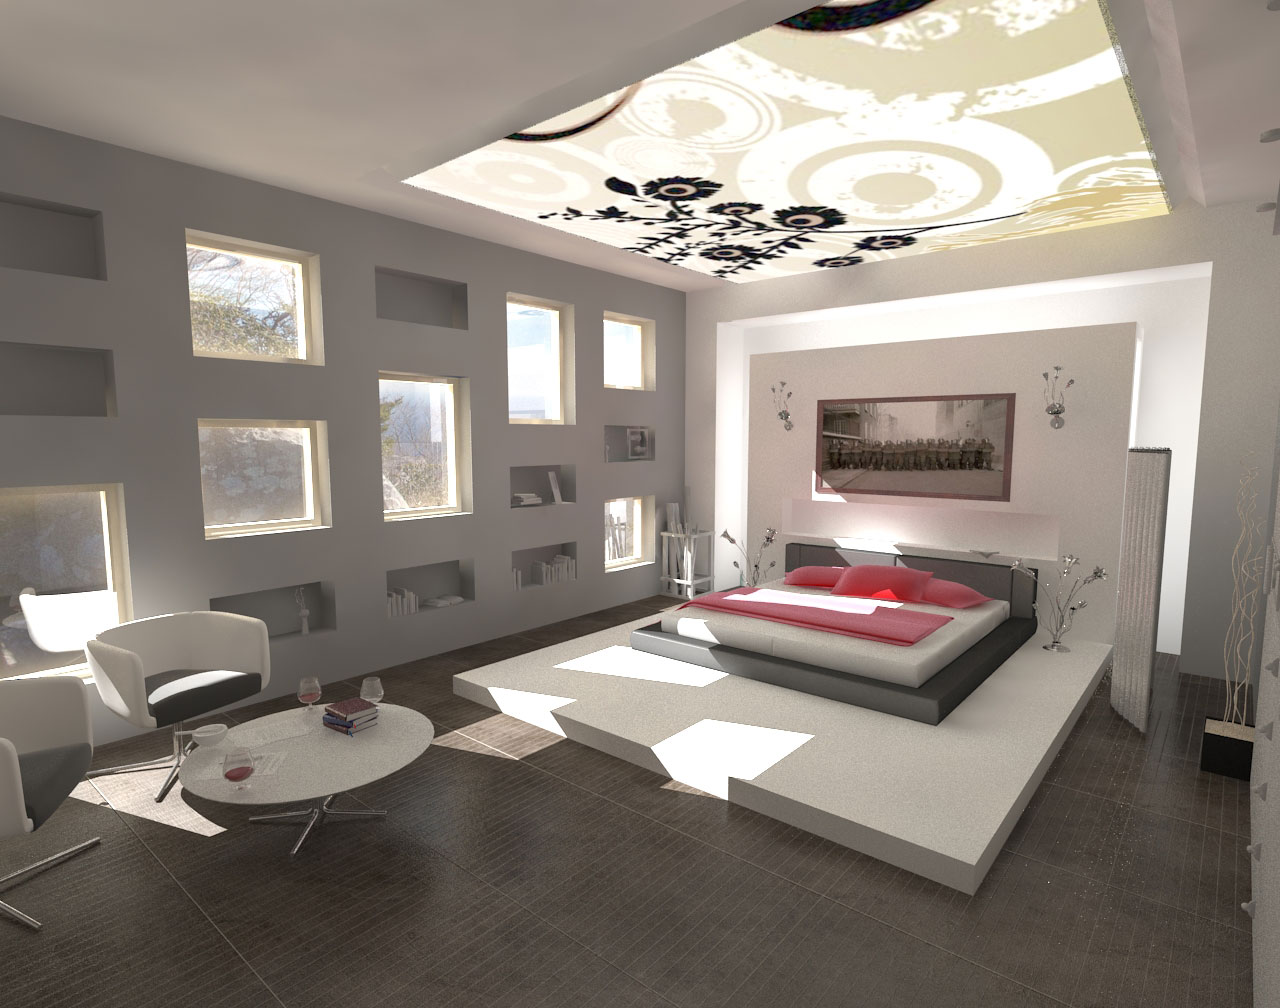 Decorations minimalist design modern bedroom interior for New style bedroom design